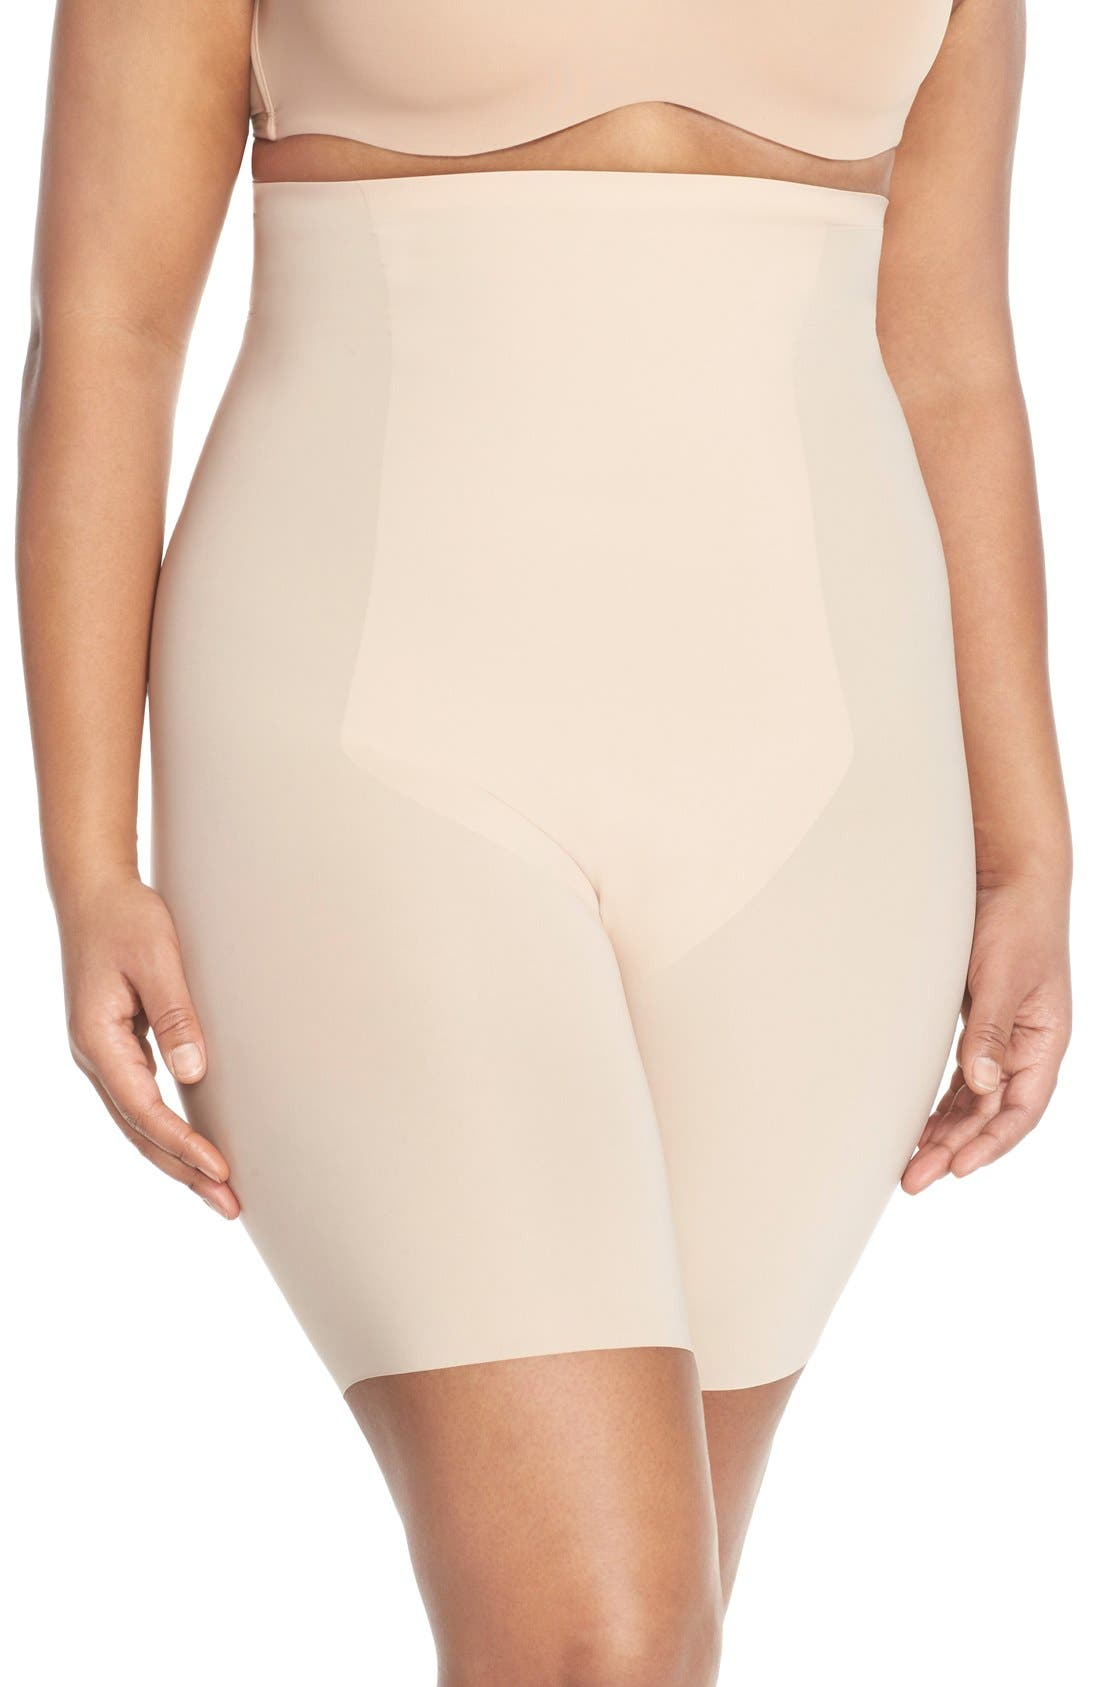 Thinstincts<sup>™</sup> High Waist Mid-Thigh Shorts,                             Main thumbnail 1, color,                             SOFT NUDE